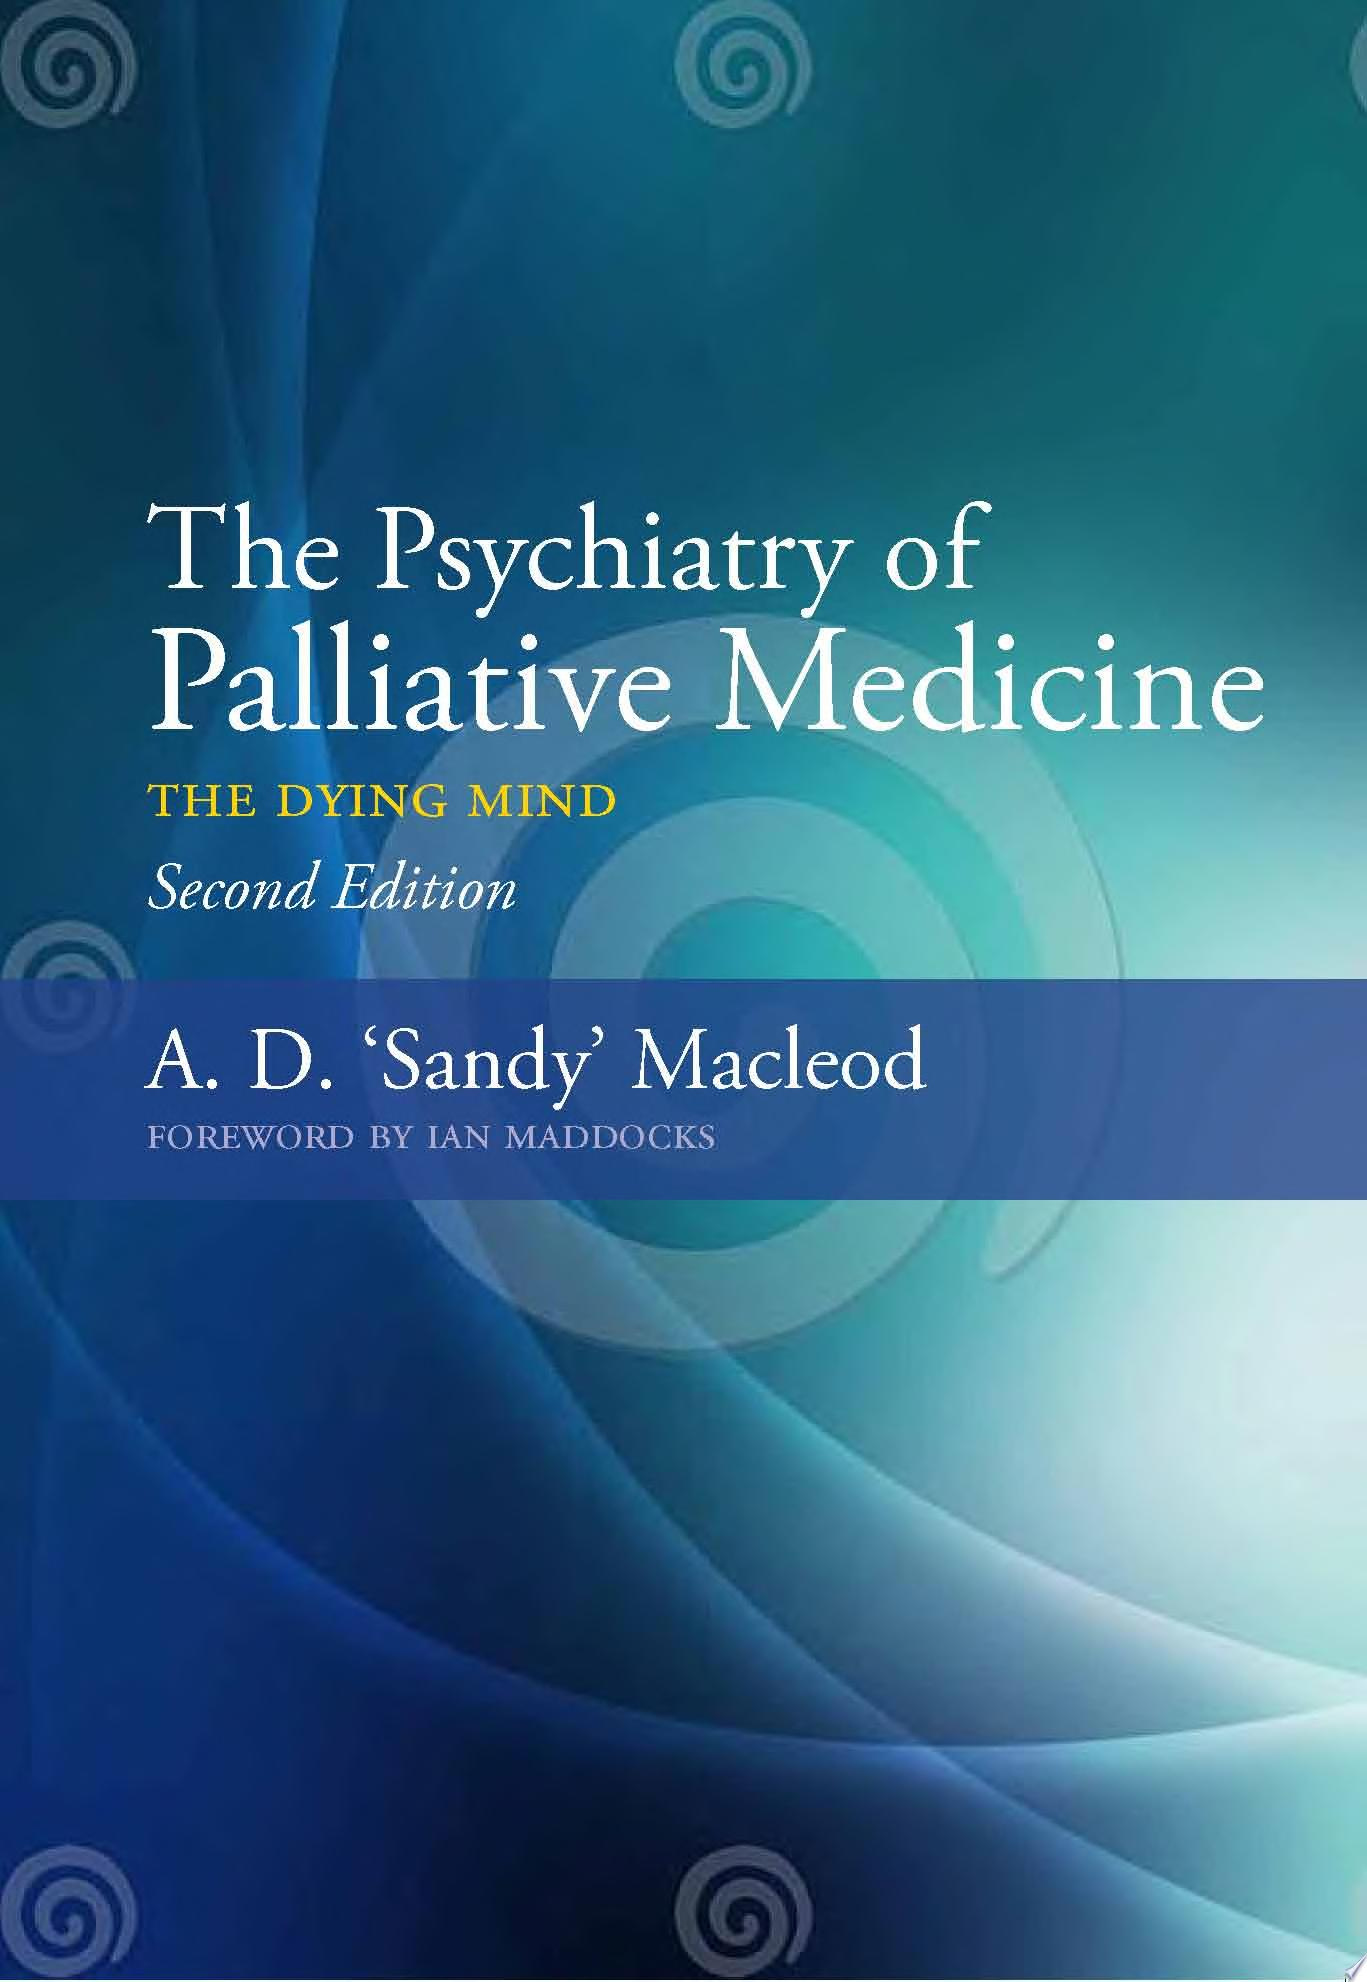 The Psychiatry of Palliative Medicine